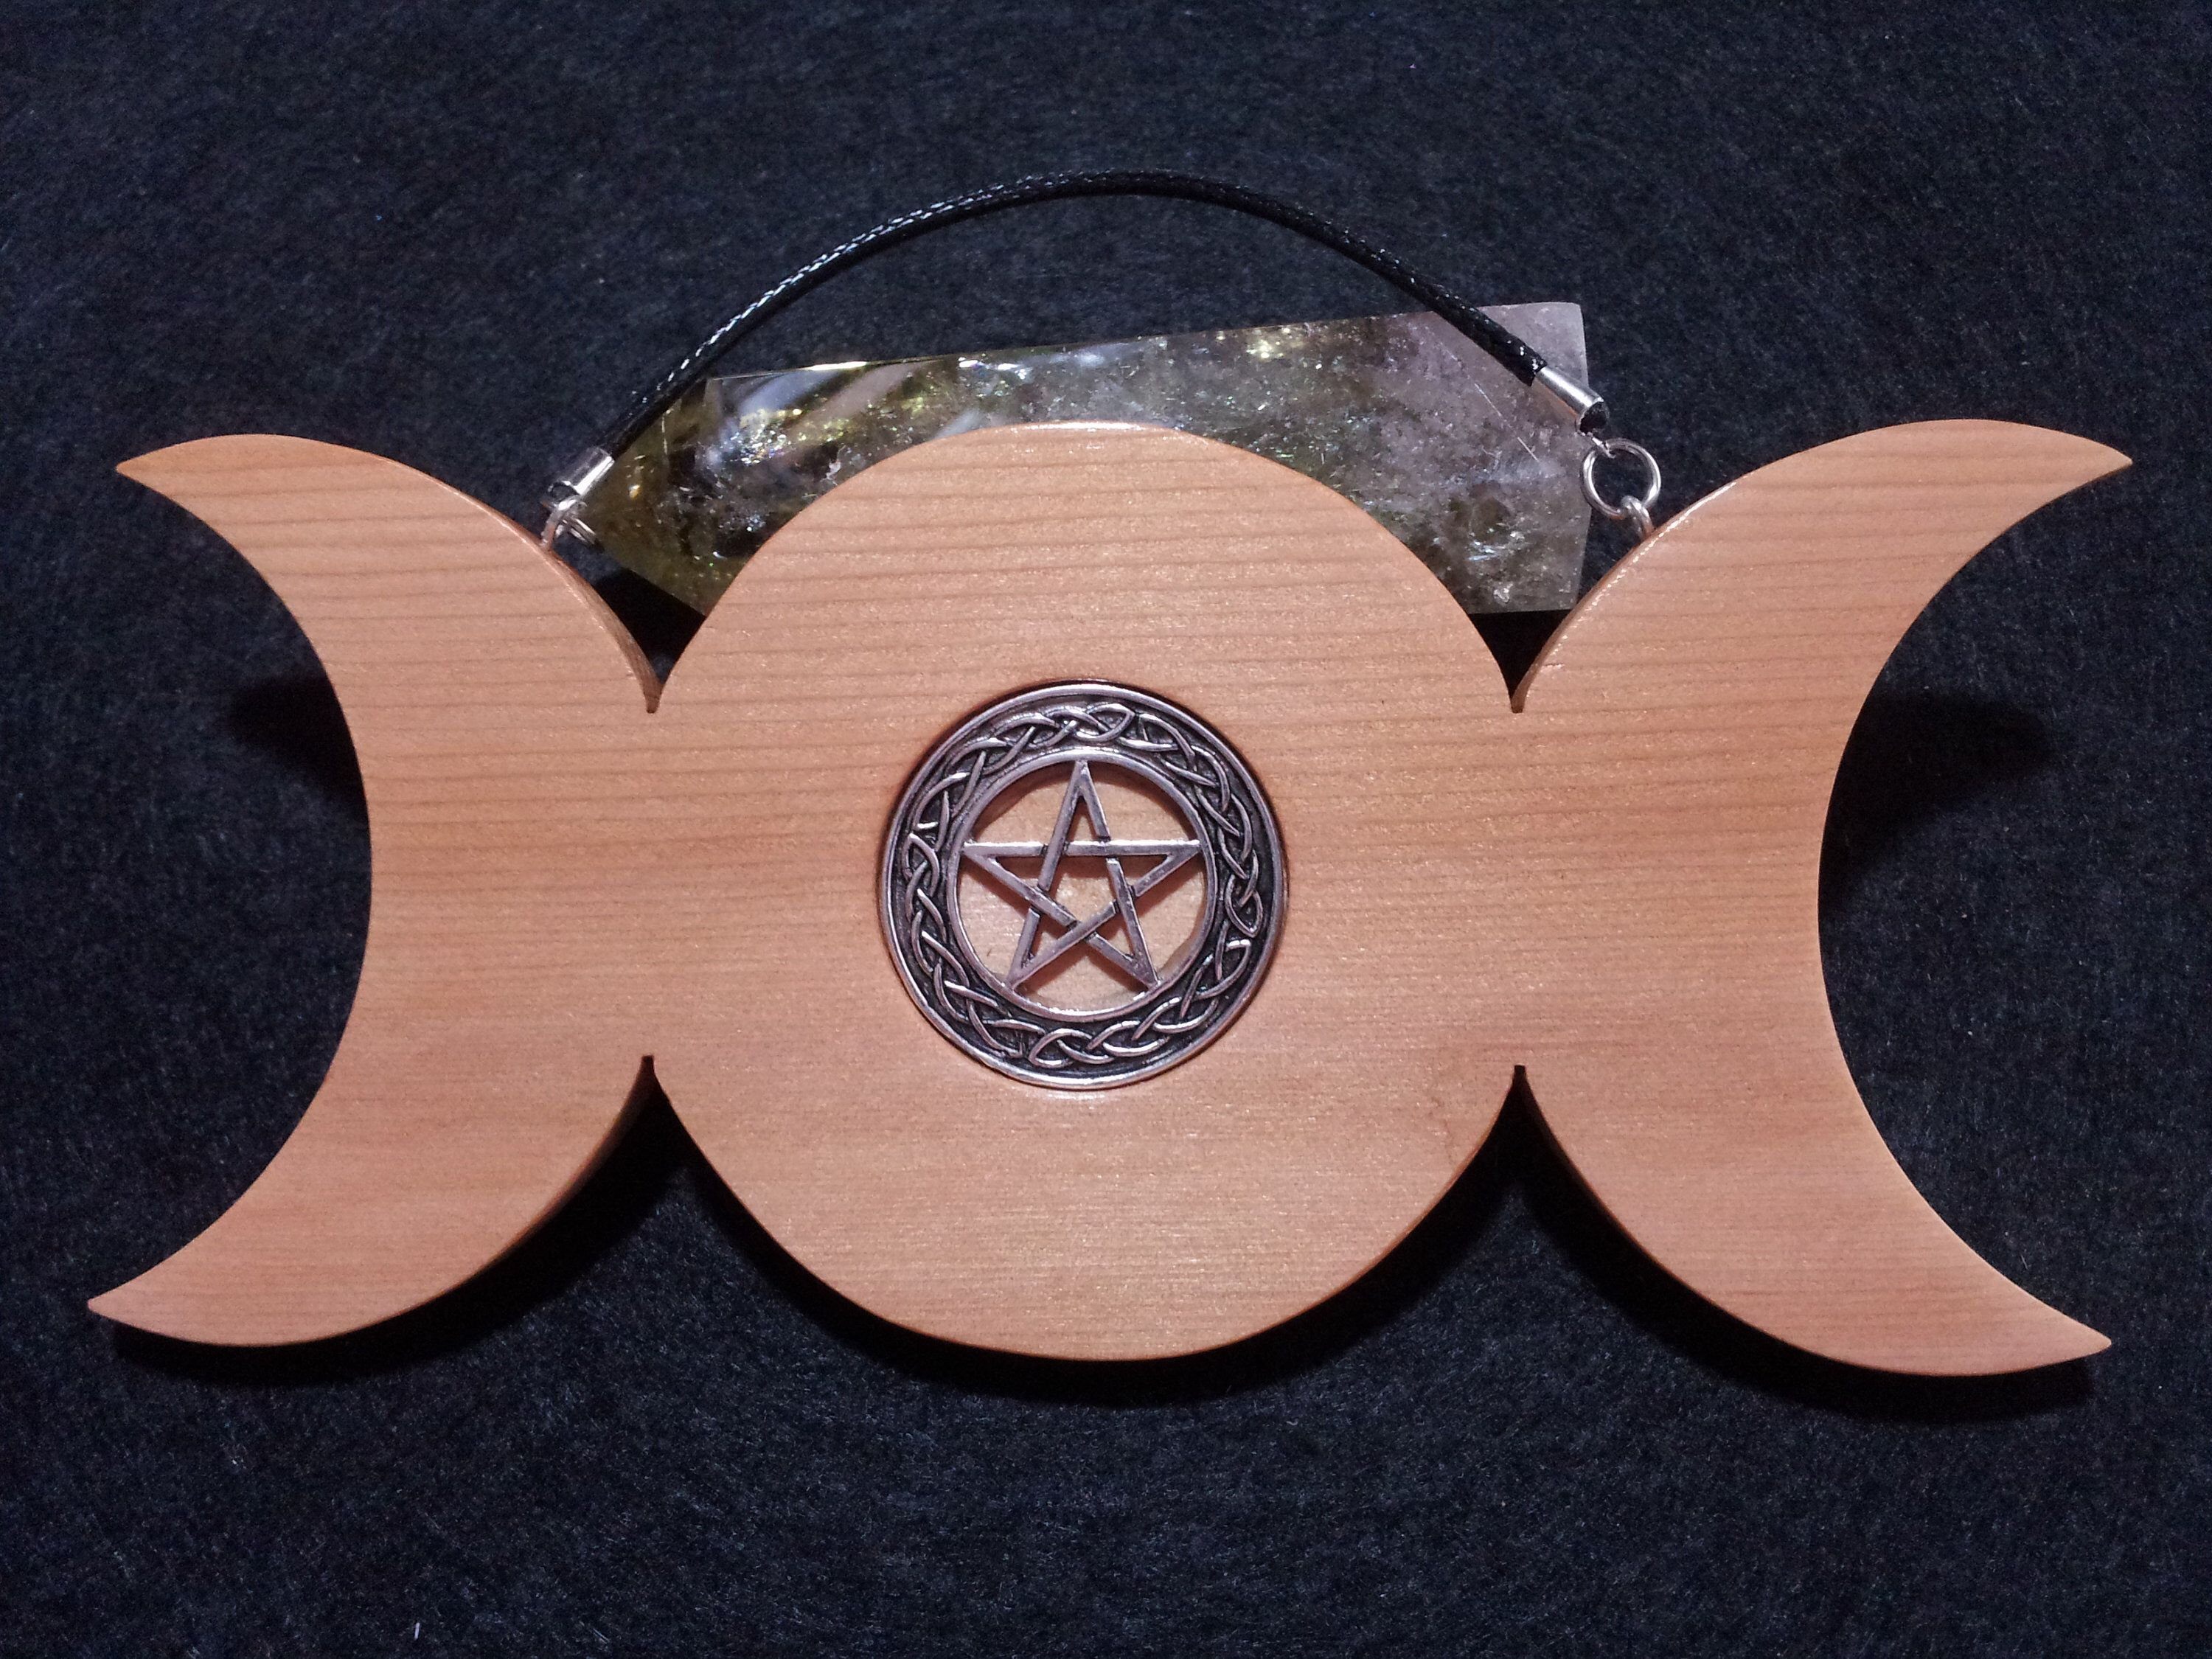 Pentacle Triple Moon Wall Hanging made from Cedar, wiccan decor,Spiritual,Pagan,Wiccan Wall Hanging,Goddess Symbolism,Triple moon wall art #wiccandecor Excited to share this item from my #etsy shop: Pentacle Triple Moon Wall Hanging made from Cedar, wiccan decor,Spiritual,Pagan,Wiccan Wall Hanging,Goddess Symbolism,Triple moon wall art #wiccandecor